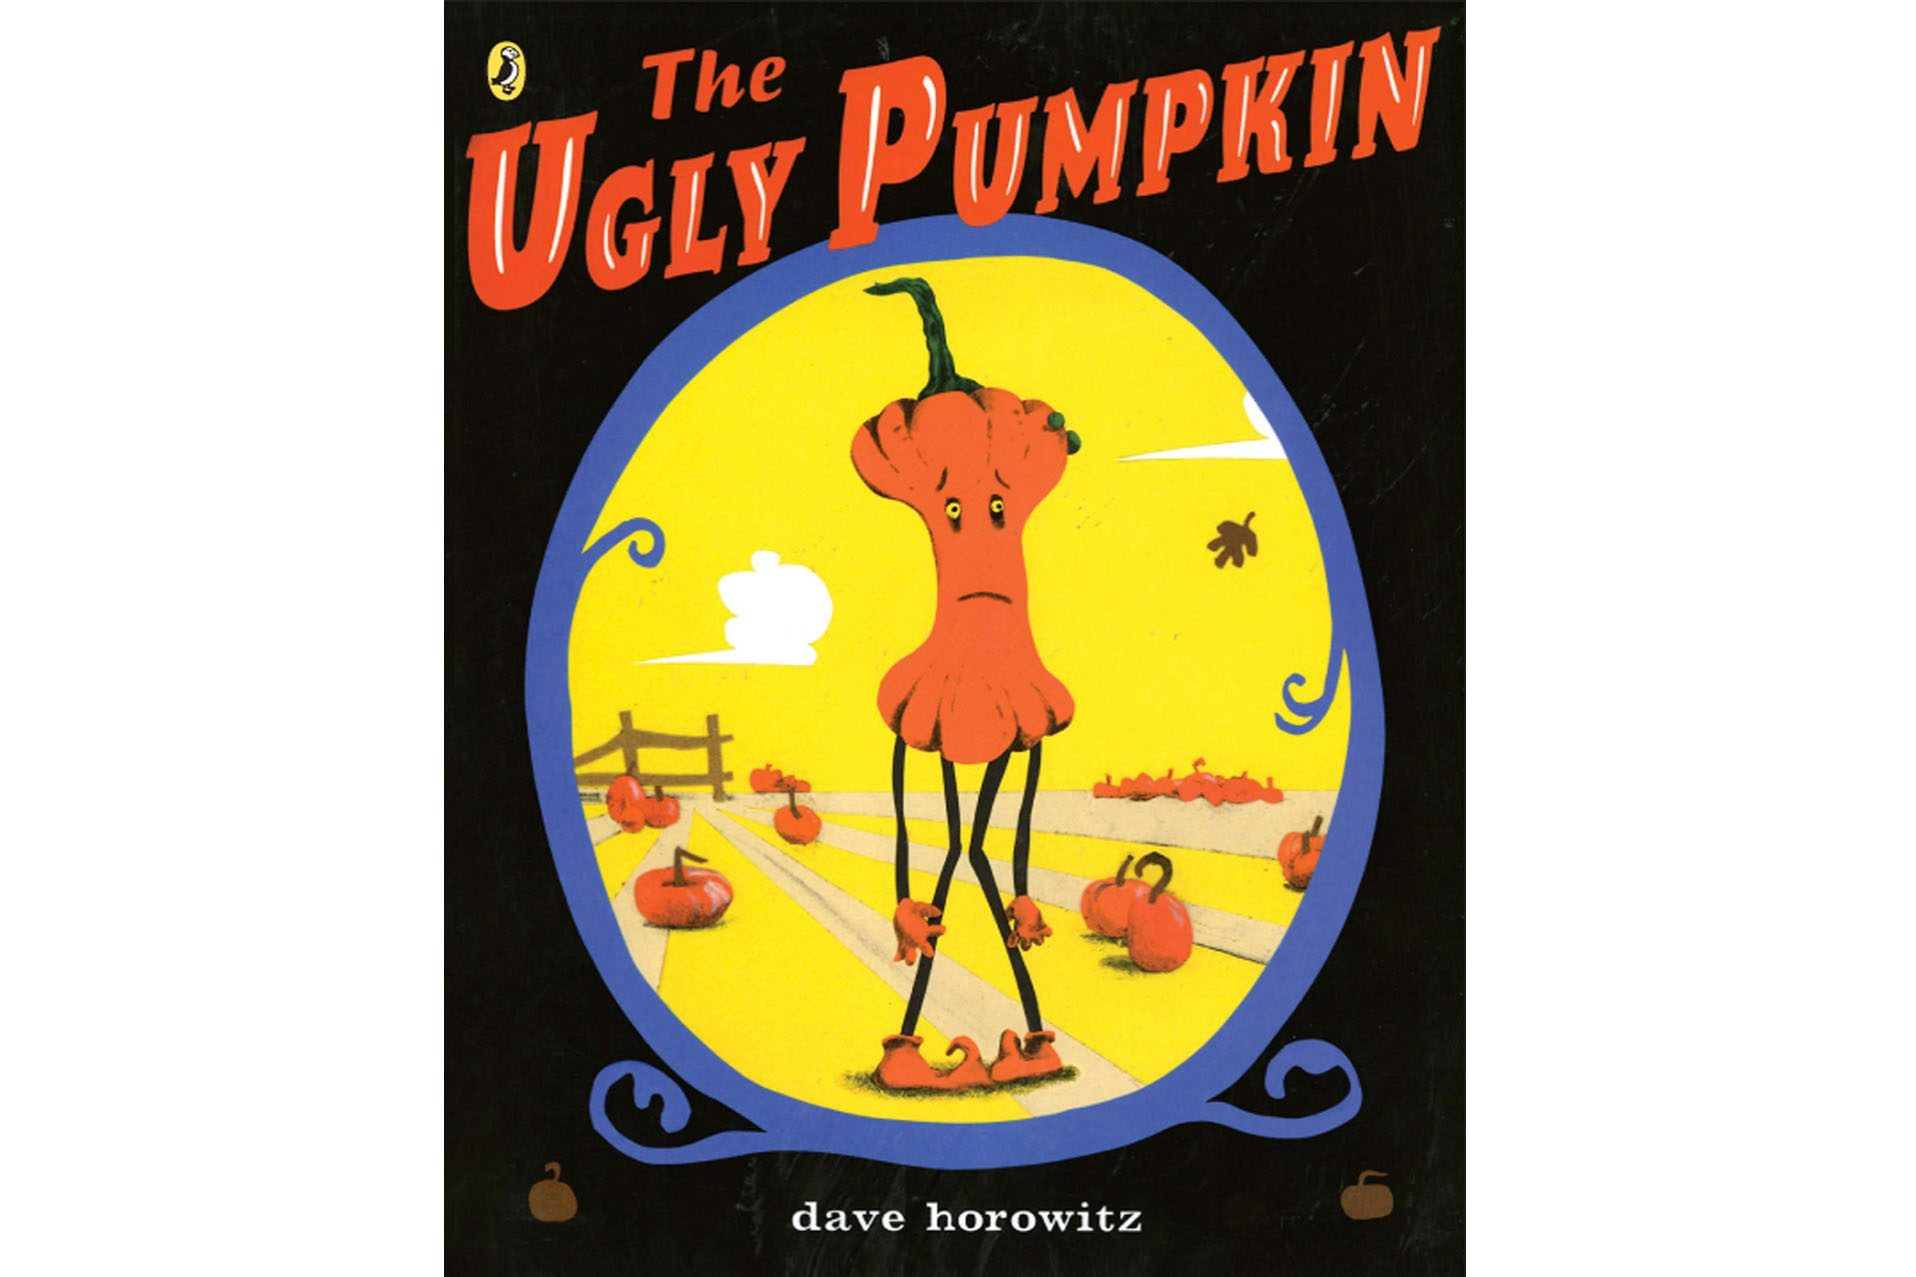 The Ugly Pumpkinby Dave Horowitz